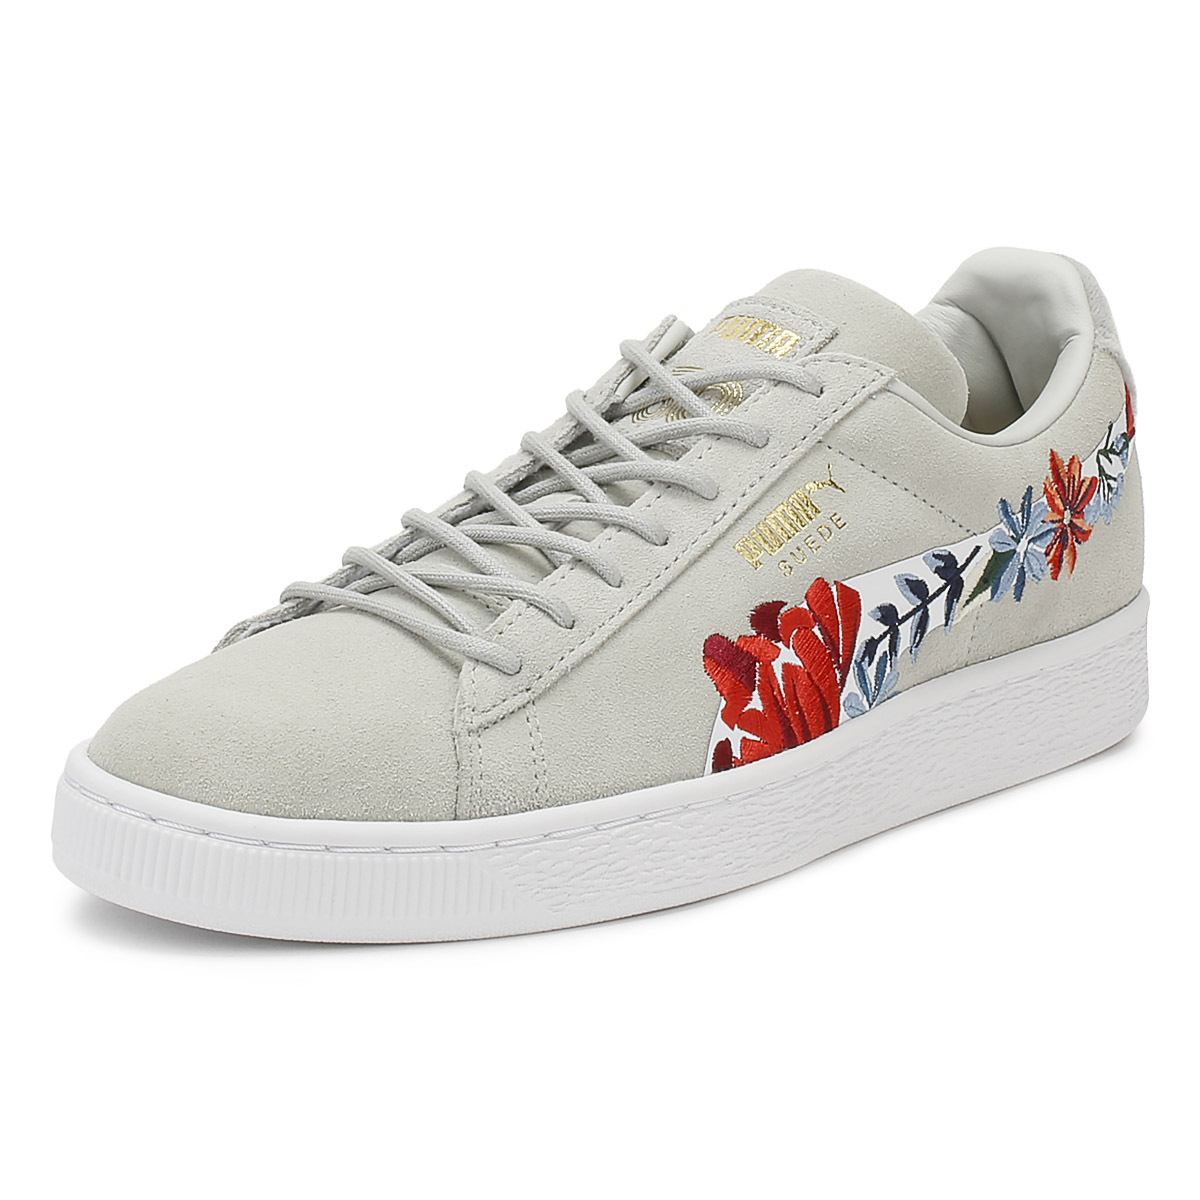 Details about PUMA Womens Trainers Glacier Grey Suede Classic Embroidery  Lace Up Casual Shoes b12a102cb